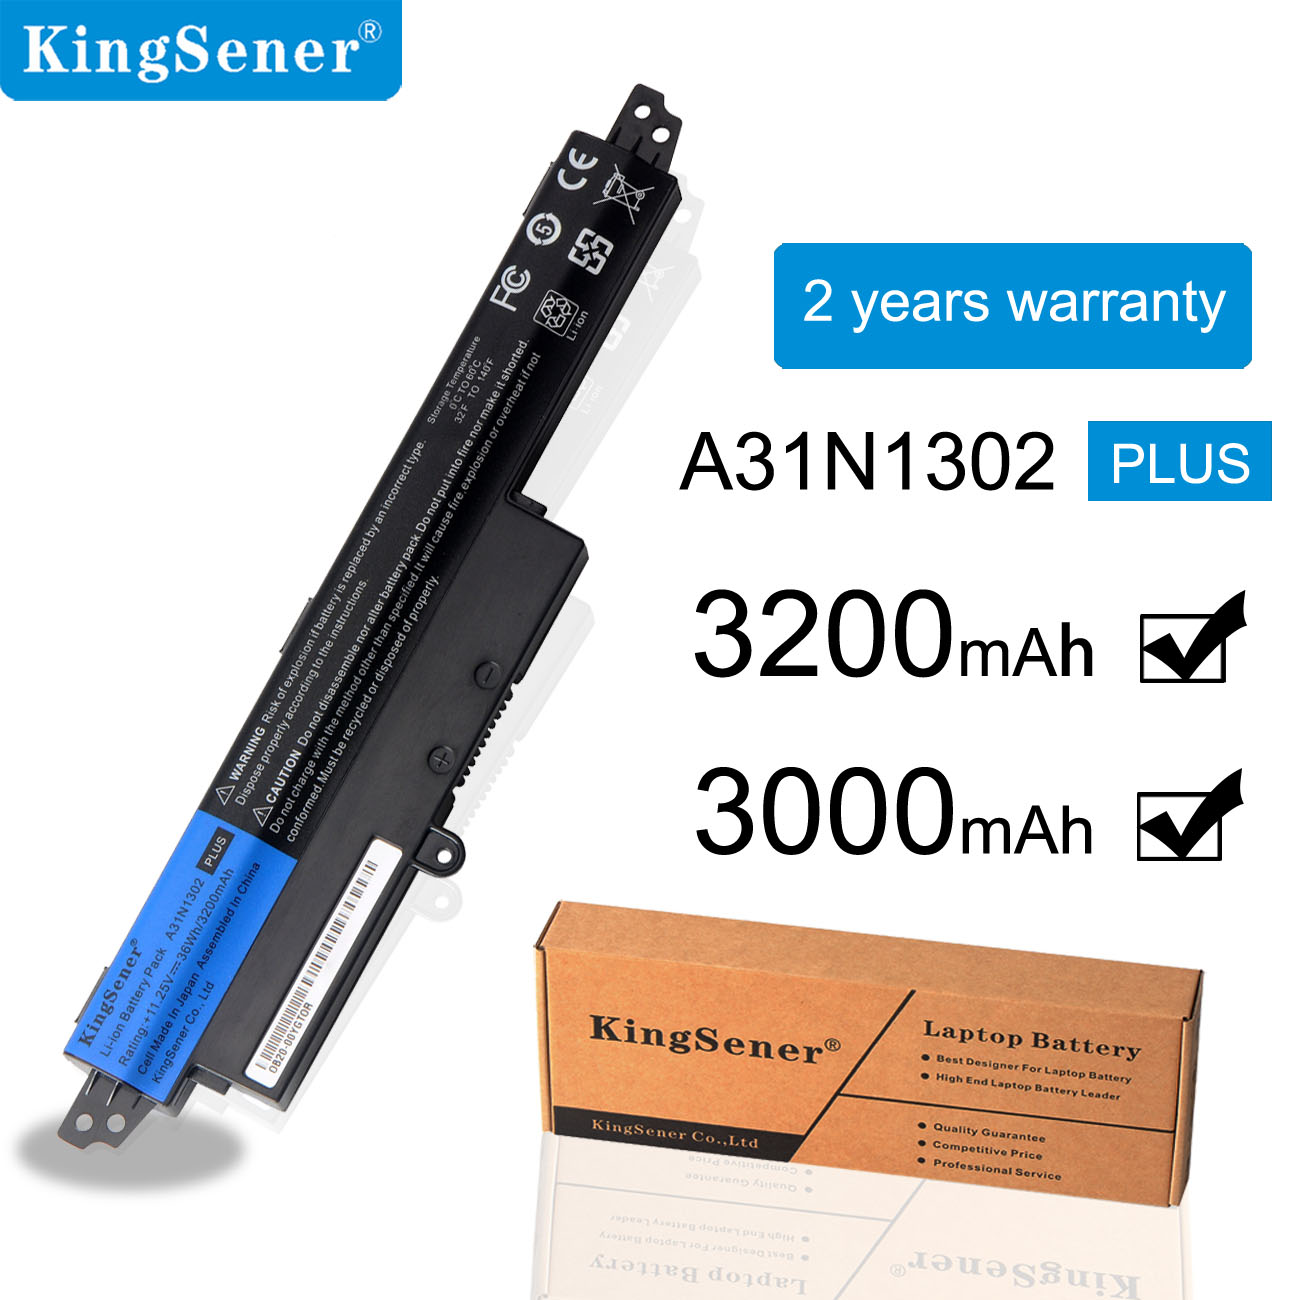 KingSener laptop battery A31N1302 A31LM9H For Asus VIVOBOOK X200CA X200MA F200CA A31LMH2 1566-6868 11.6 Series